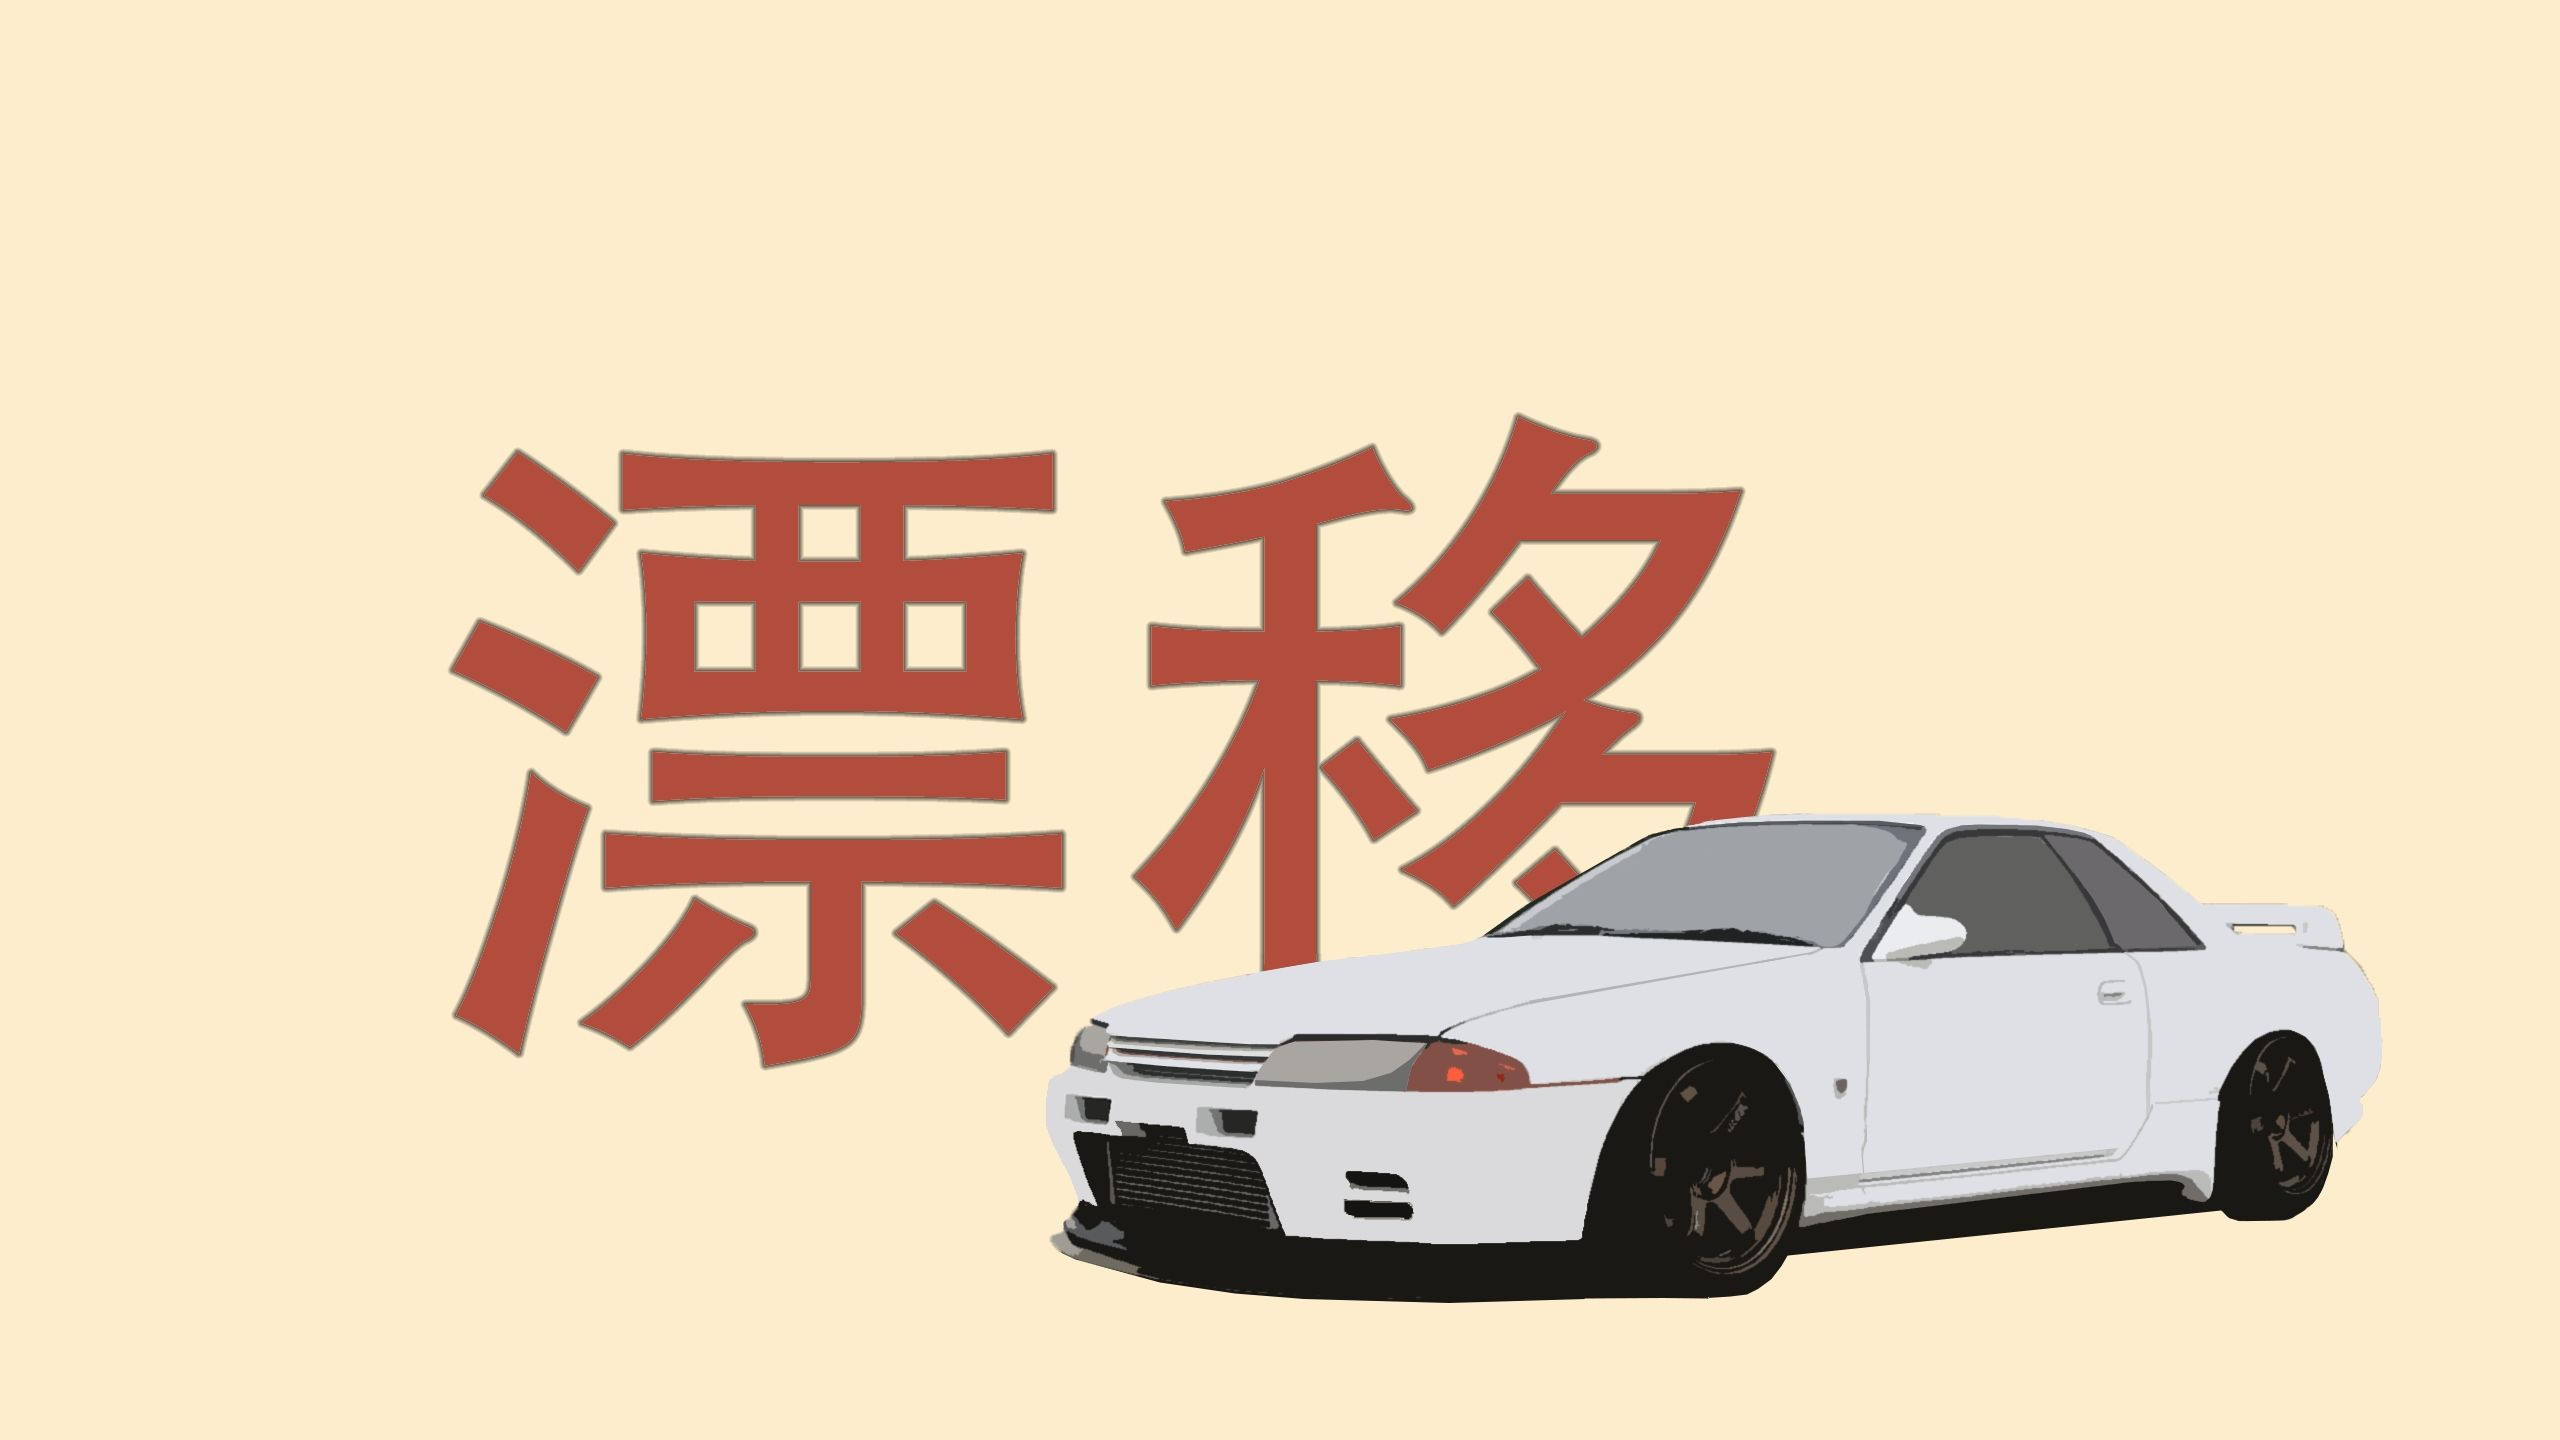 Nissan Skyline R32 Wallpapers Top Free Nissan Skyline R32 Backgrounds Wallpaperaccess